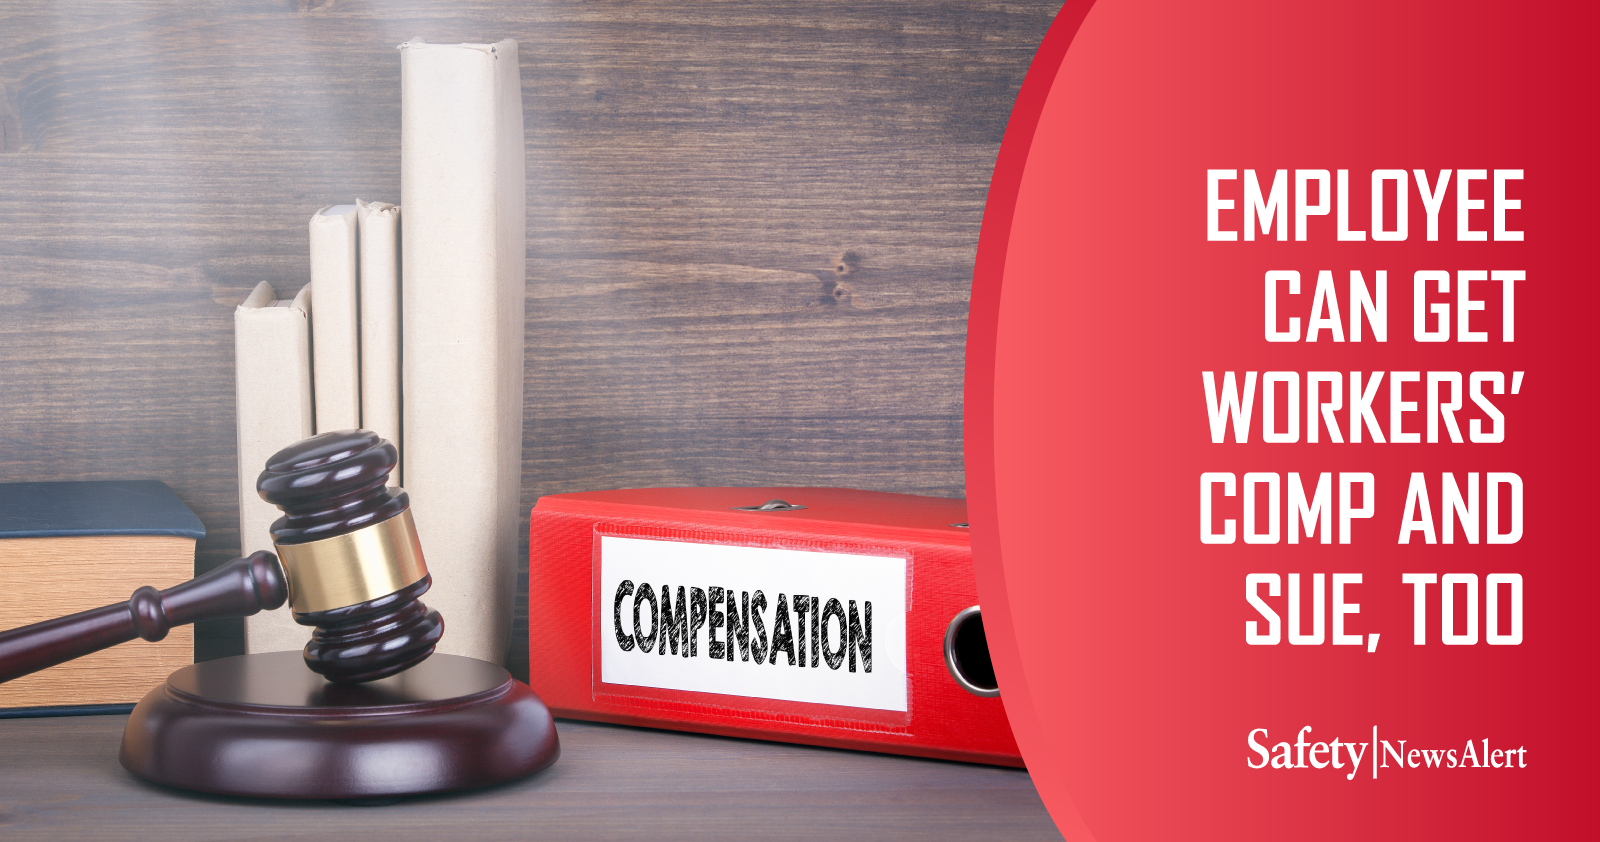 Employee Can Get Workers' Comp And Sue Too